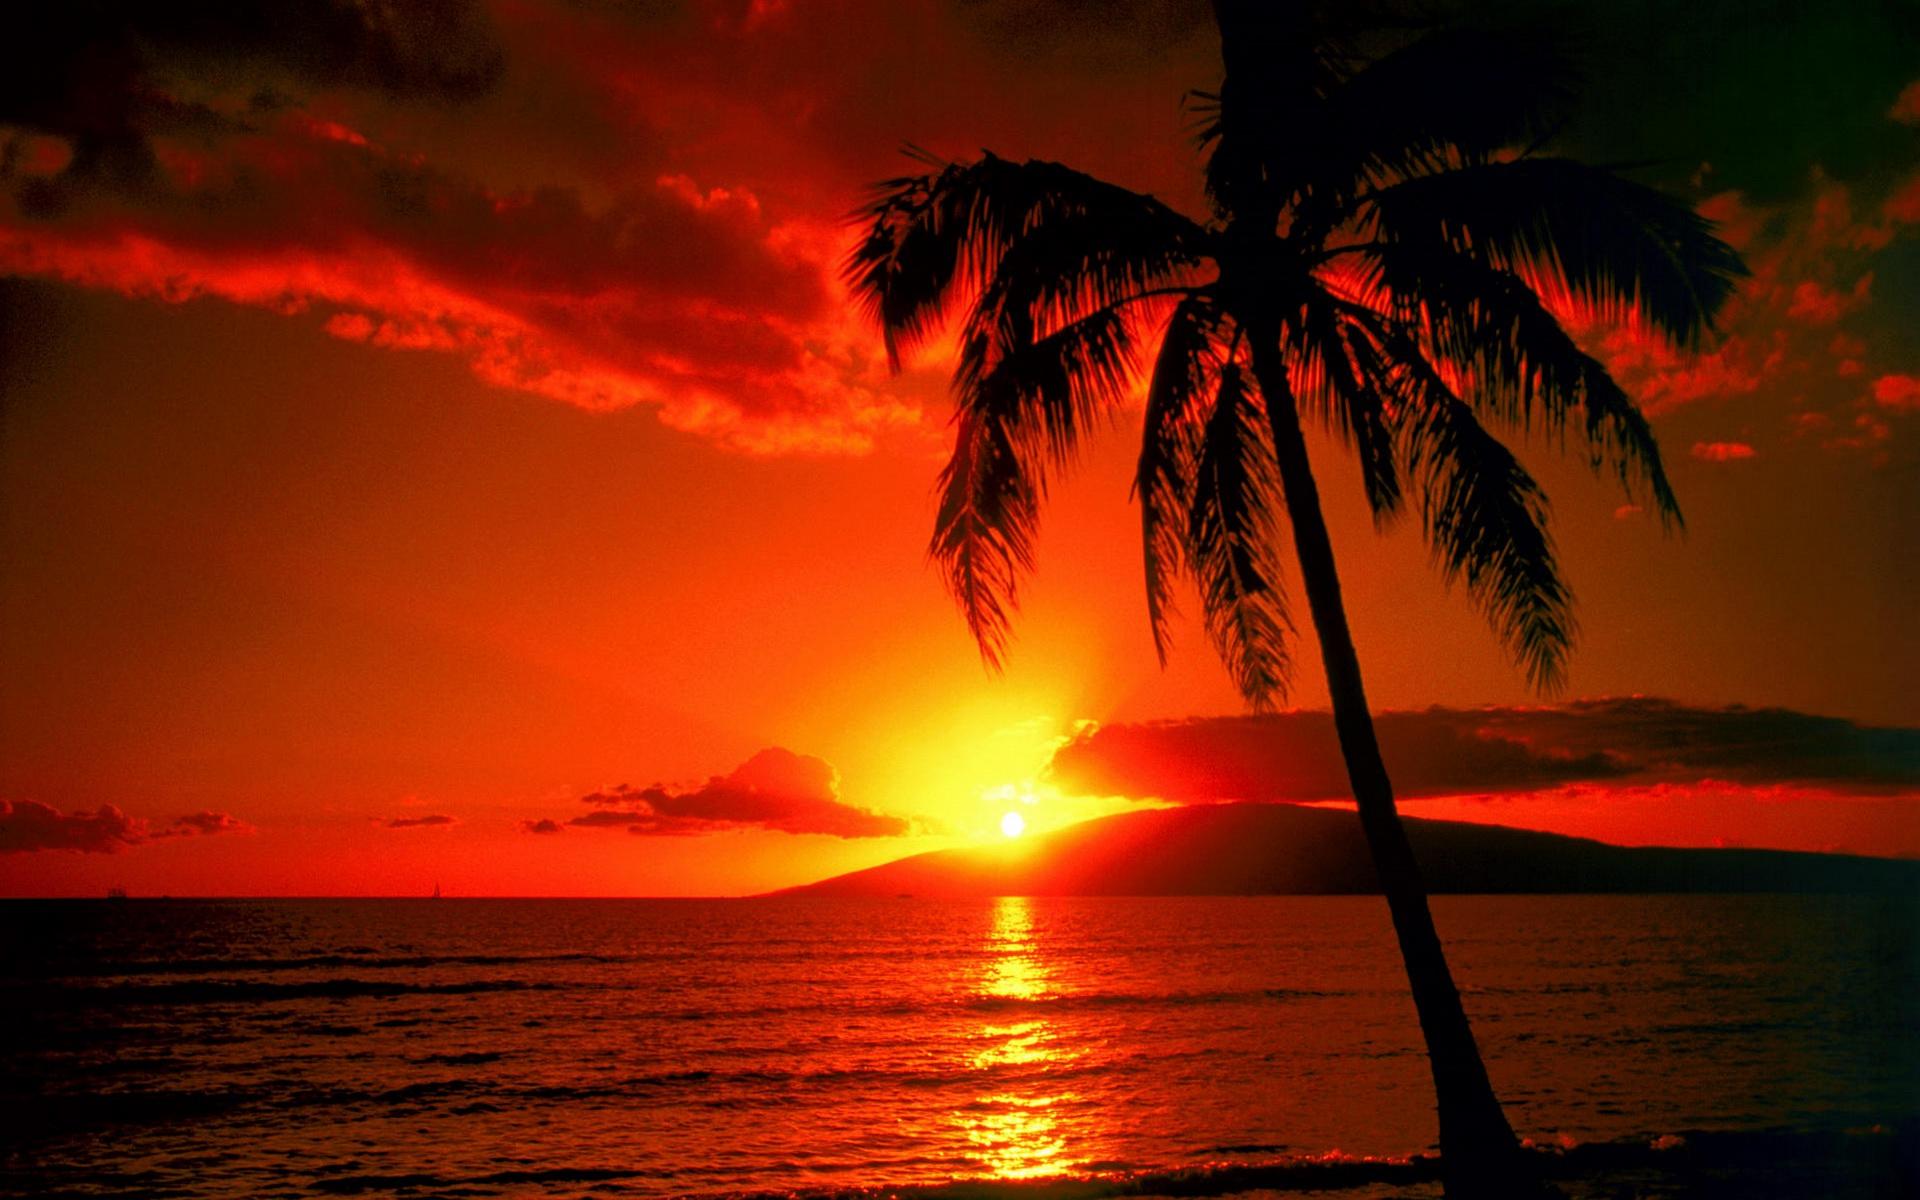 sunset hd wallpapers beach sunset backgrounds top natural scene images 1920x1200